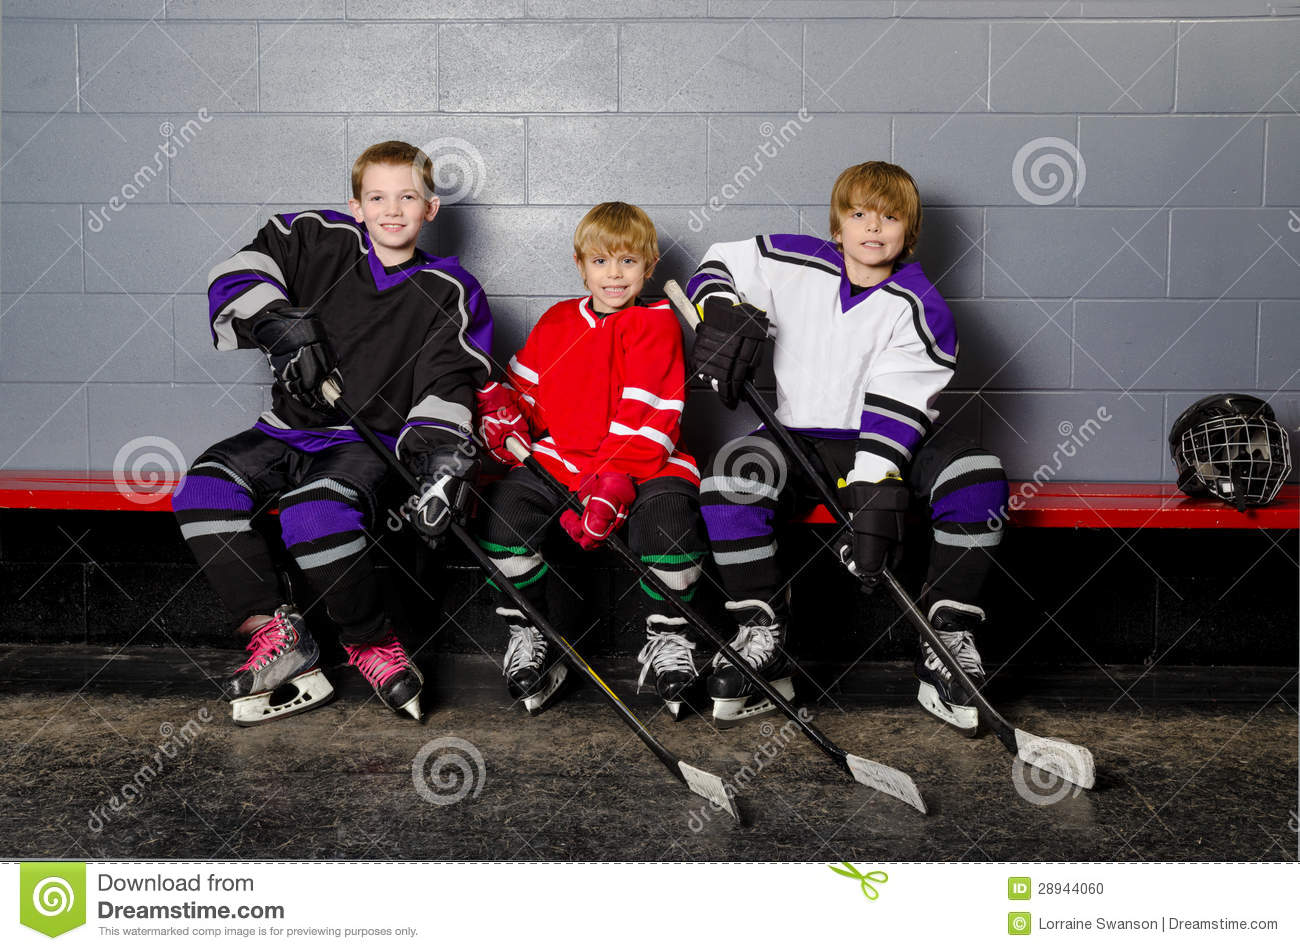 Midget hockey players